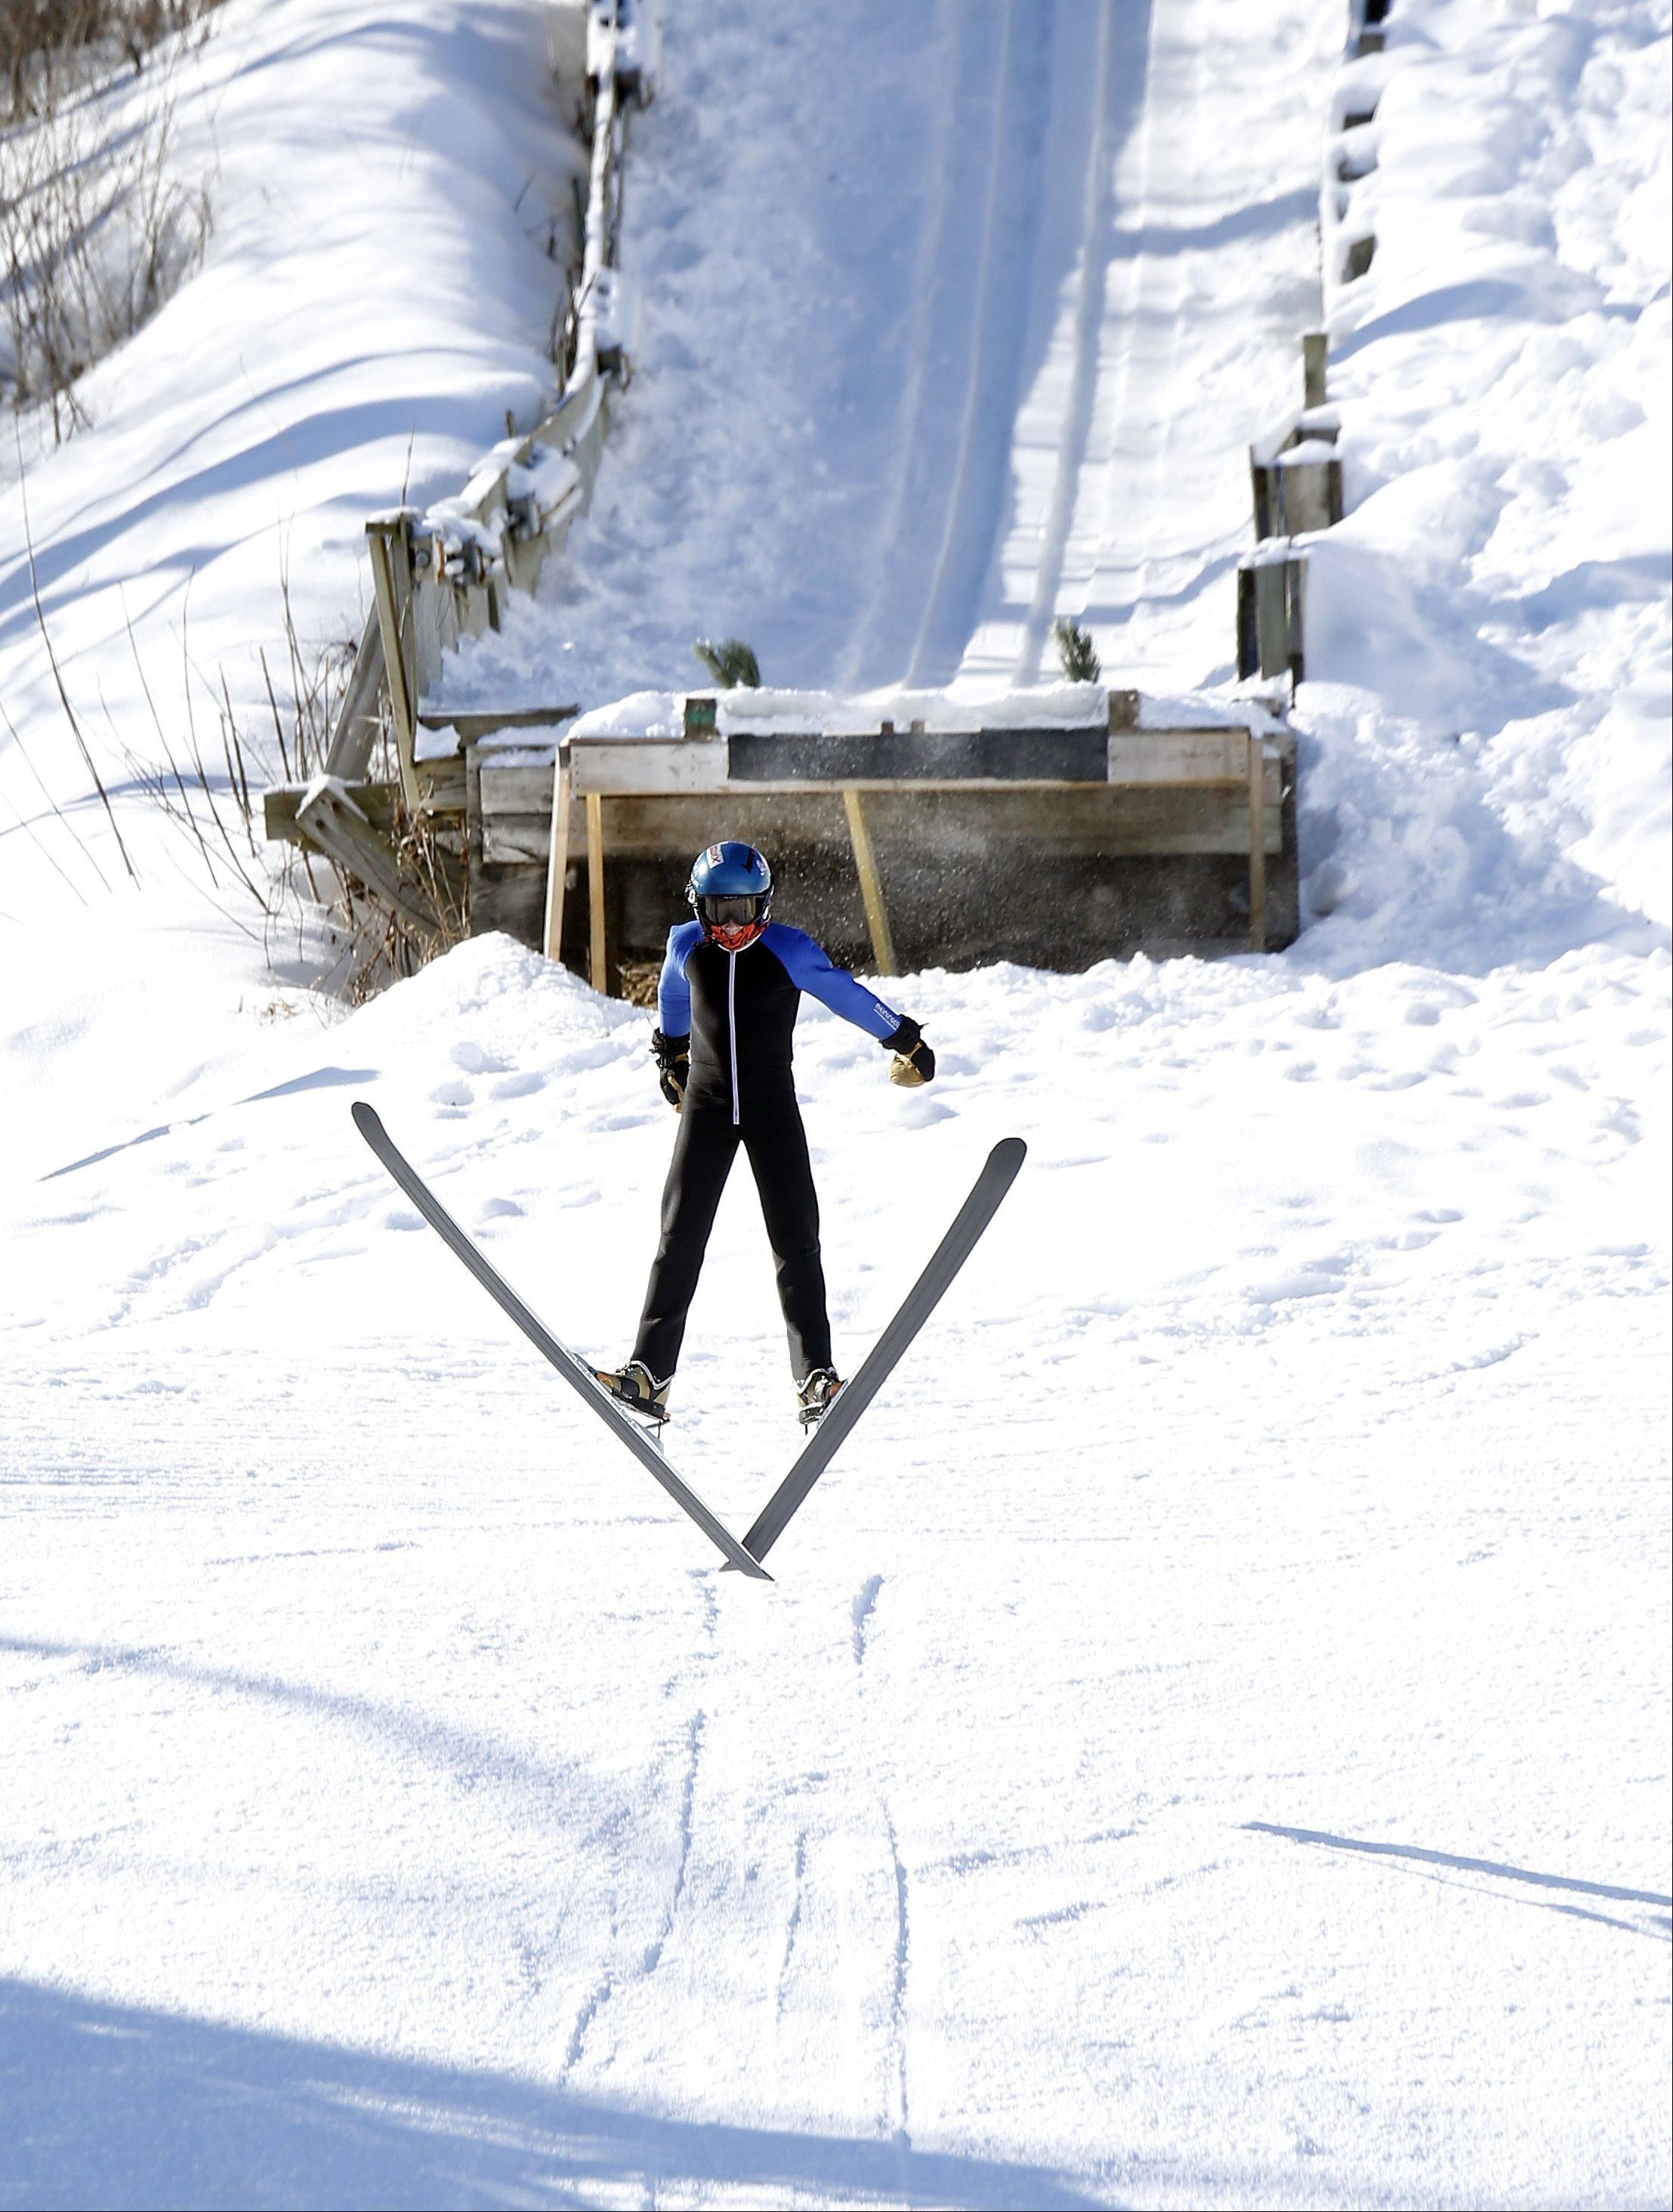 Woody Waugh, 12, of Cloquet, MN, launches himself from the 40-meter ramp during warm-ups at the 109th Norge Ski Jump Tournament Saturday in Fox River Grove.